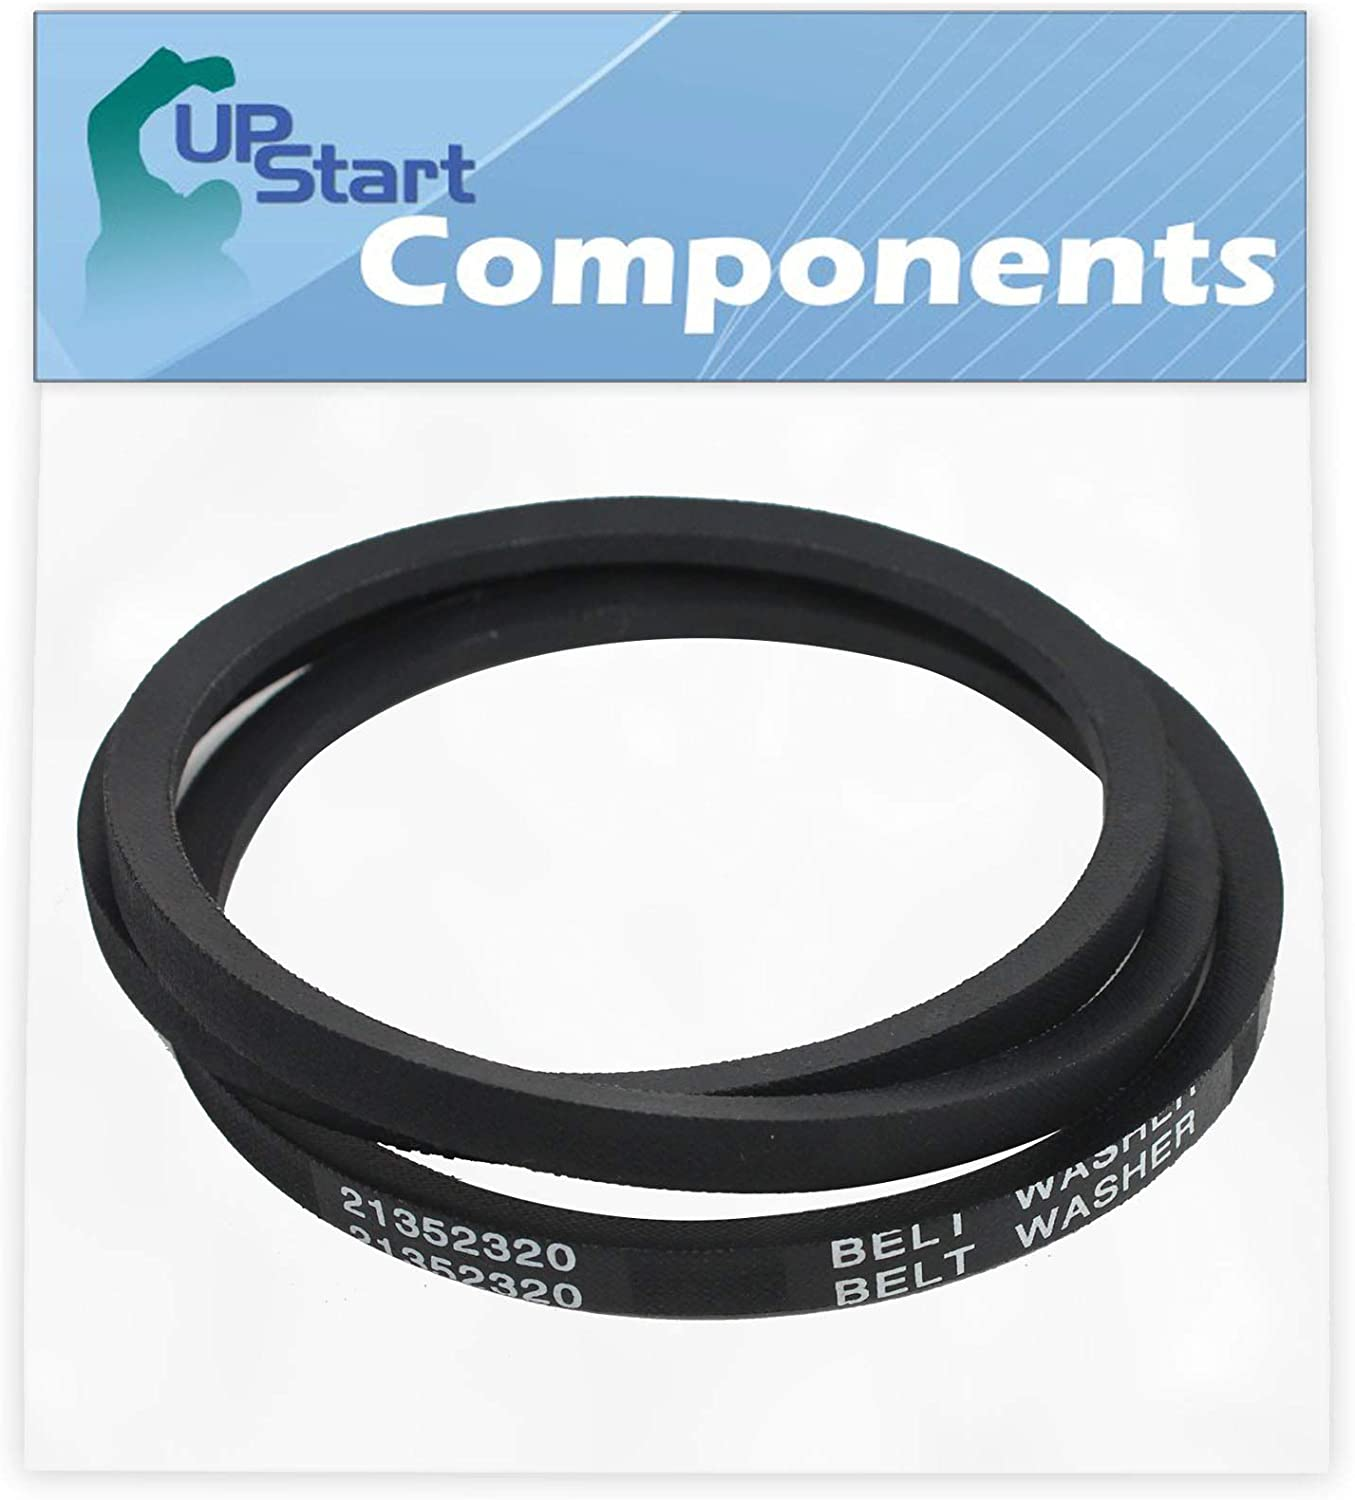 WP21352320 Washing Machine Drive Belt Replacement for Maytag PAVT920AWW - Compatible with 35-3662 Washing Machine Belt